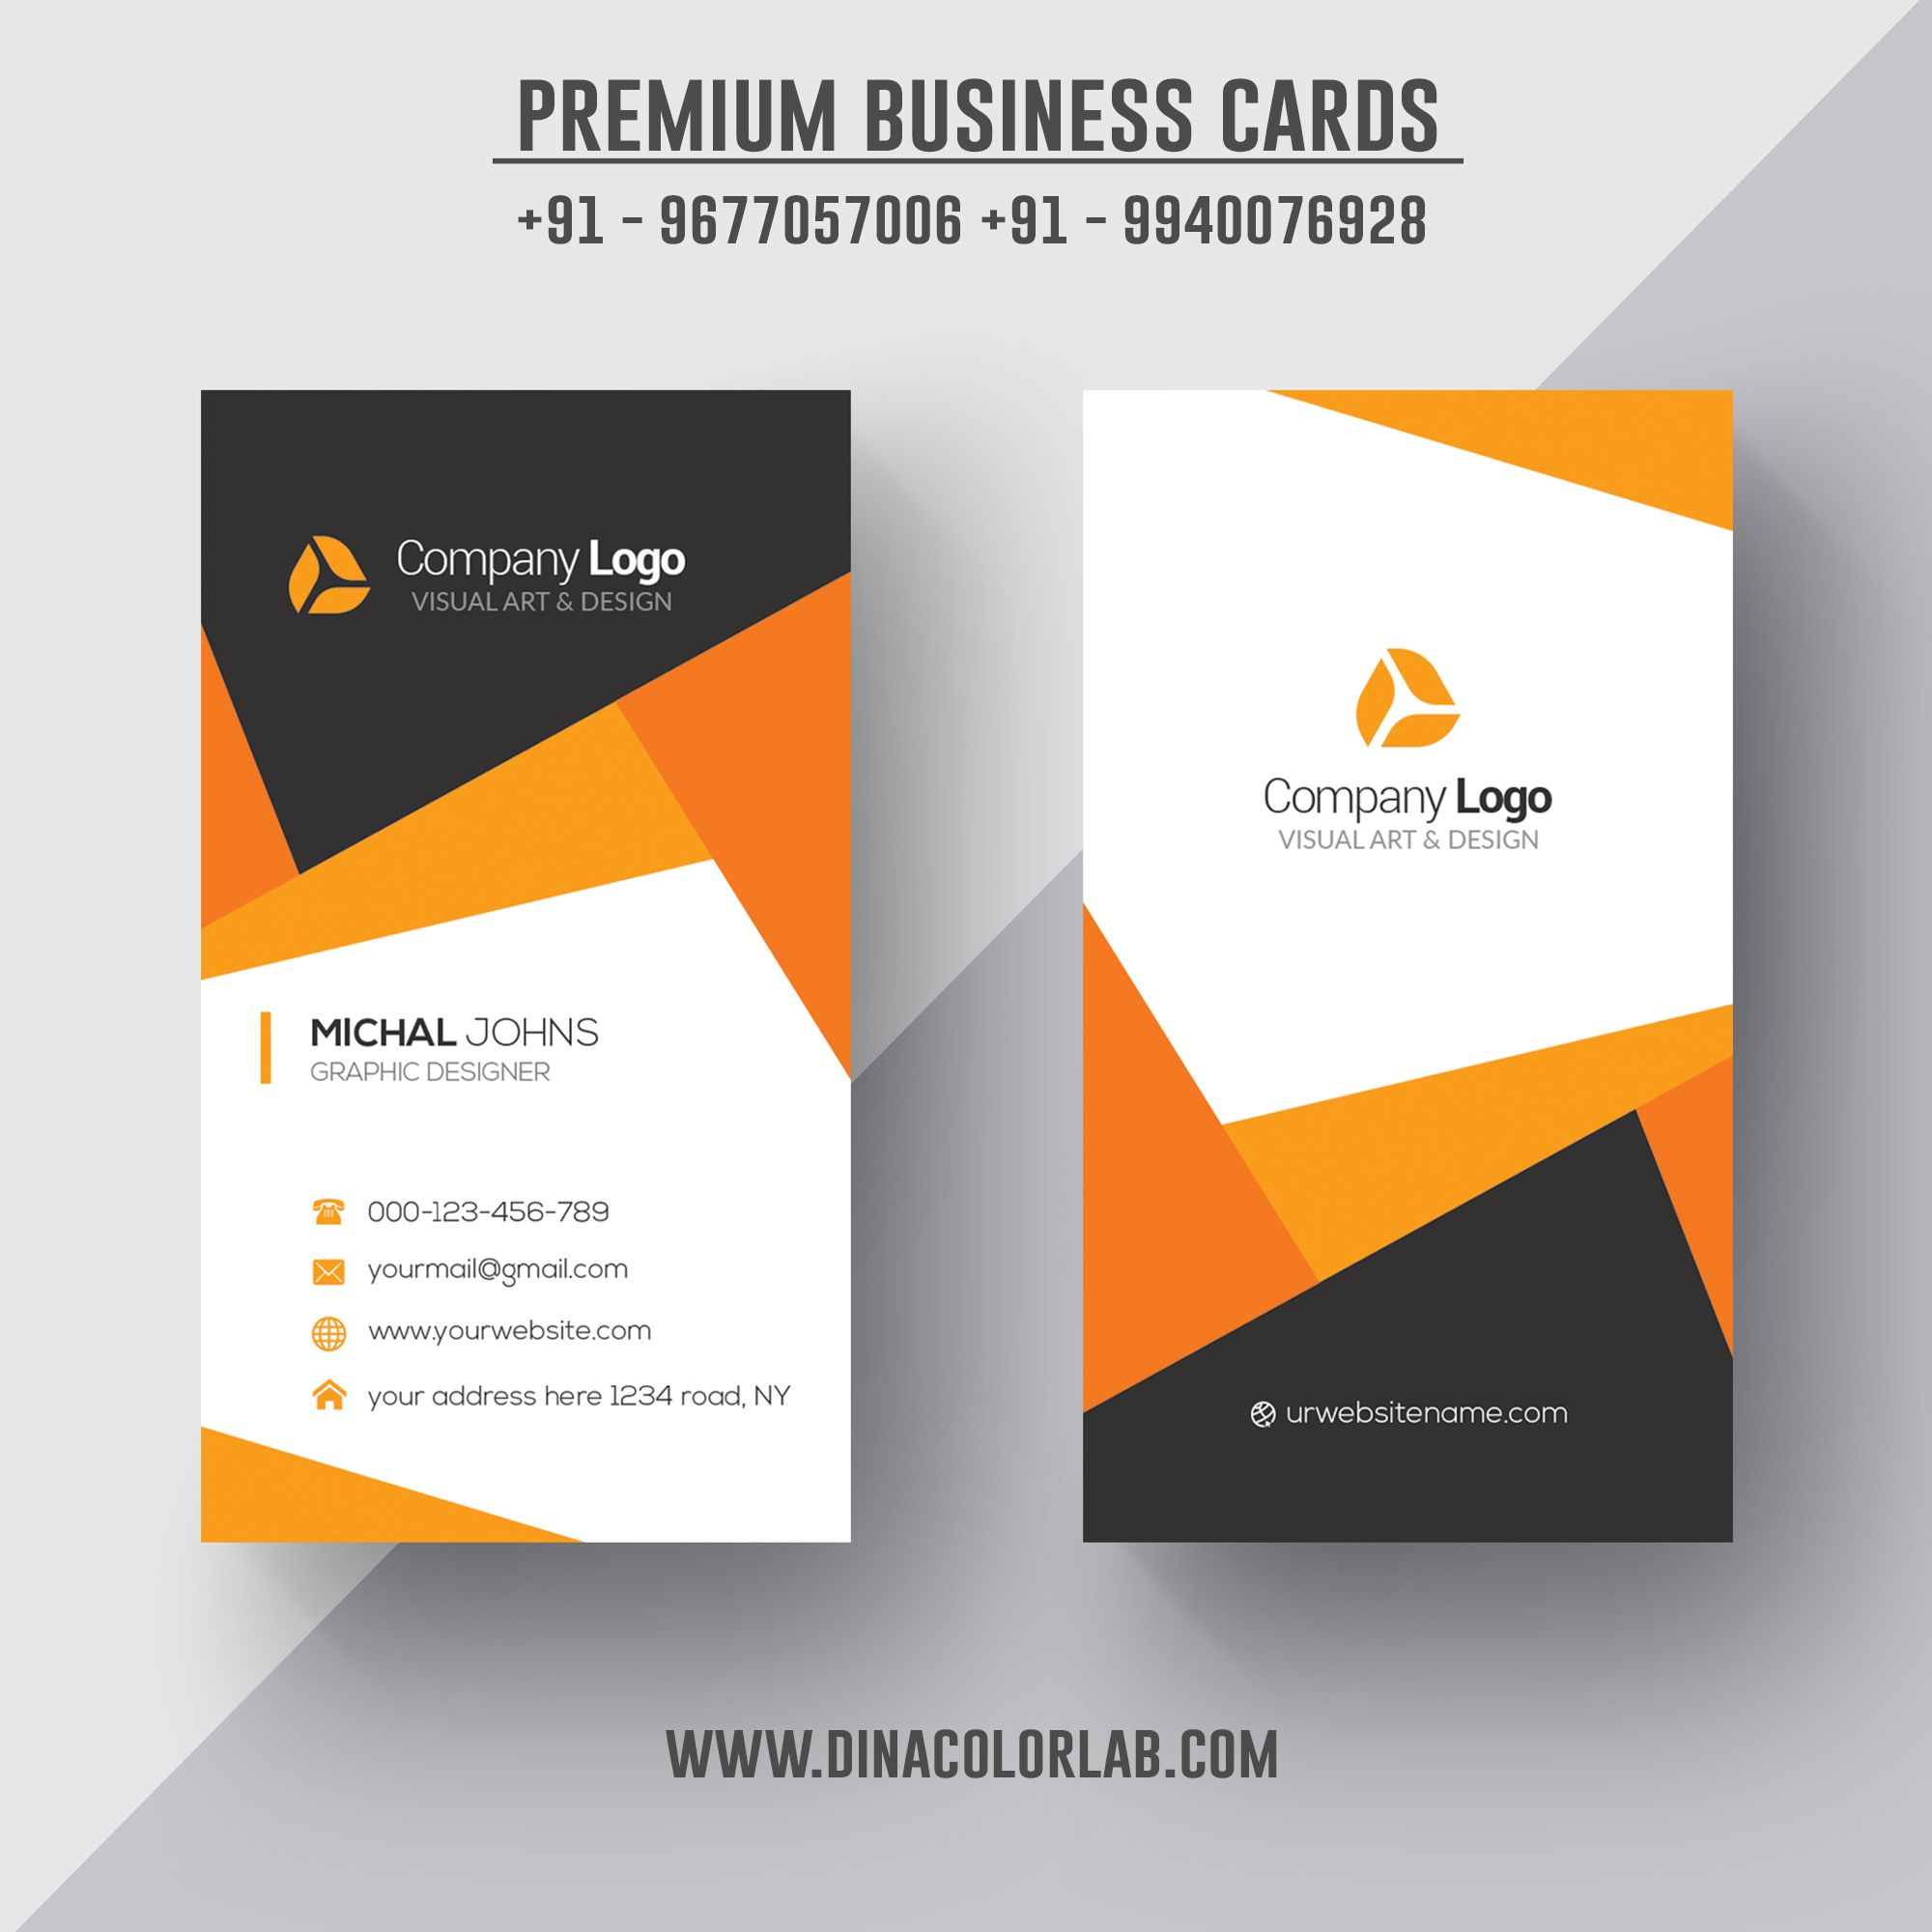 Business Cards Printing Printing Business Cards Simple Business Cards Free Business Card Templates